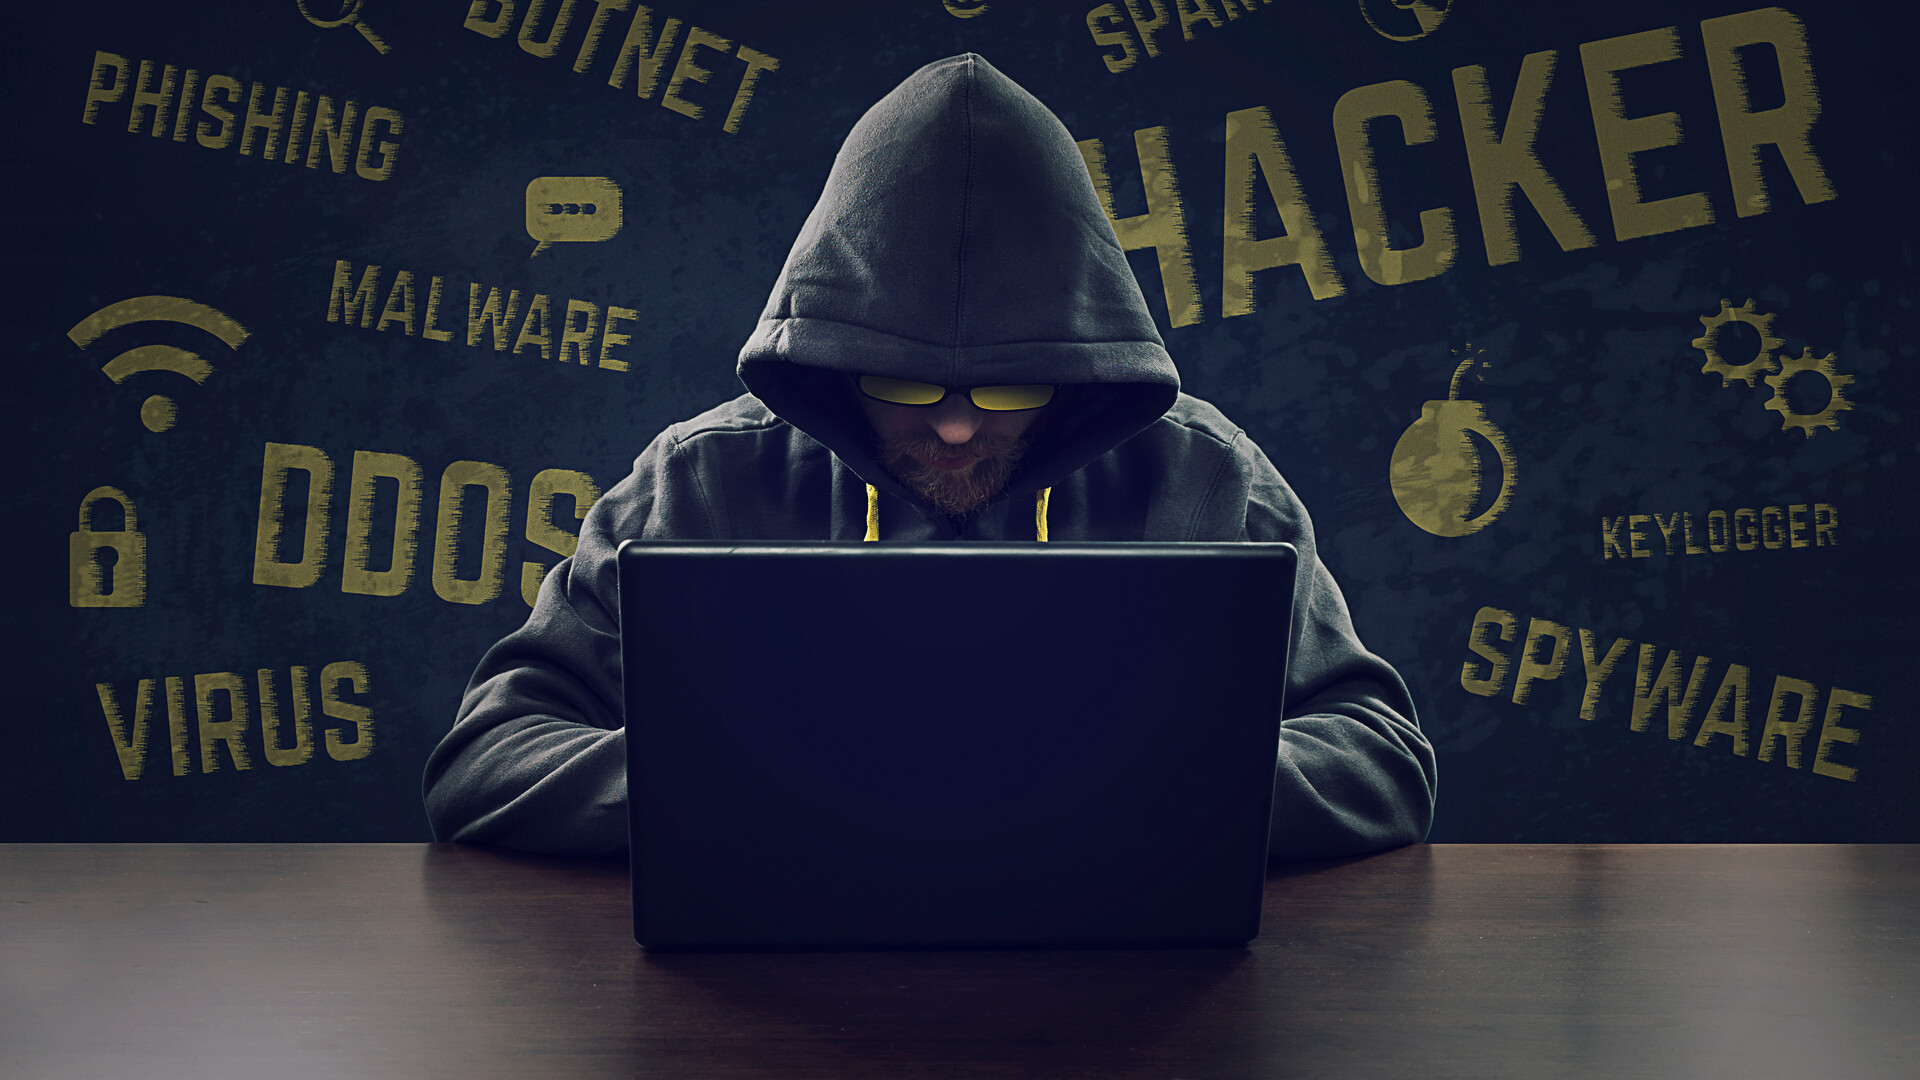 1920x1080 Hacker Laptop Full Hd 1080p Hd 4k Wallpapers